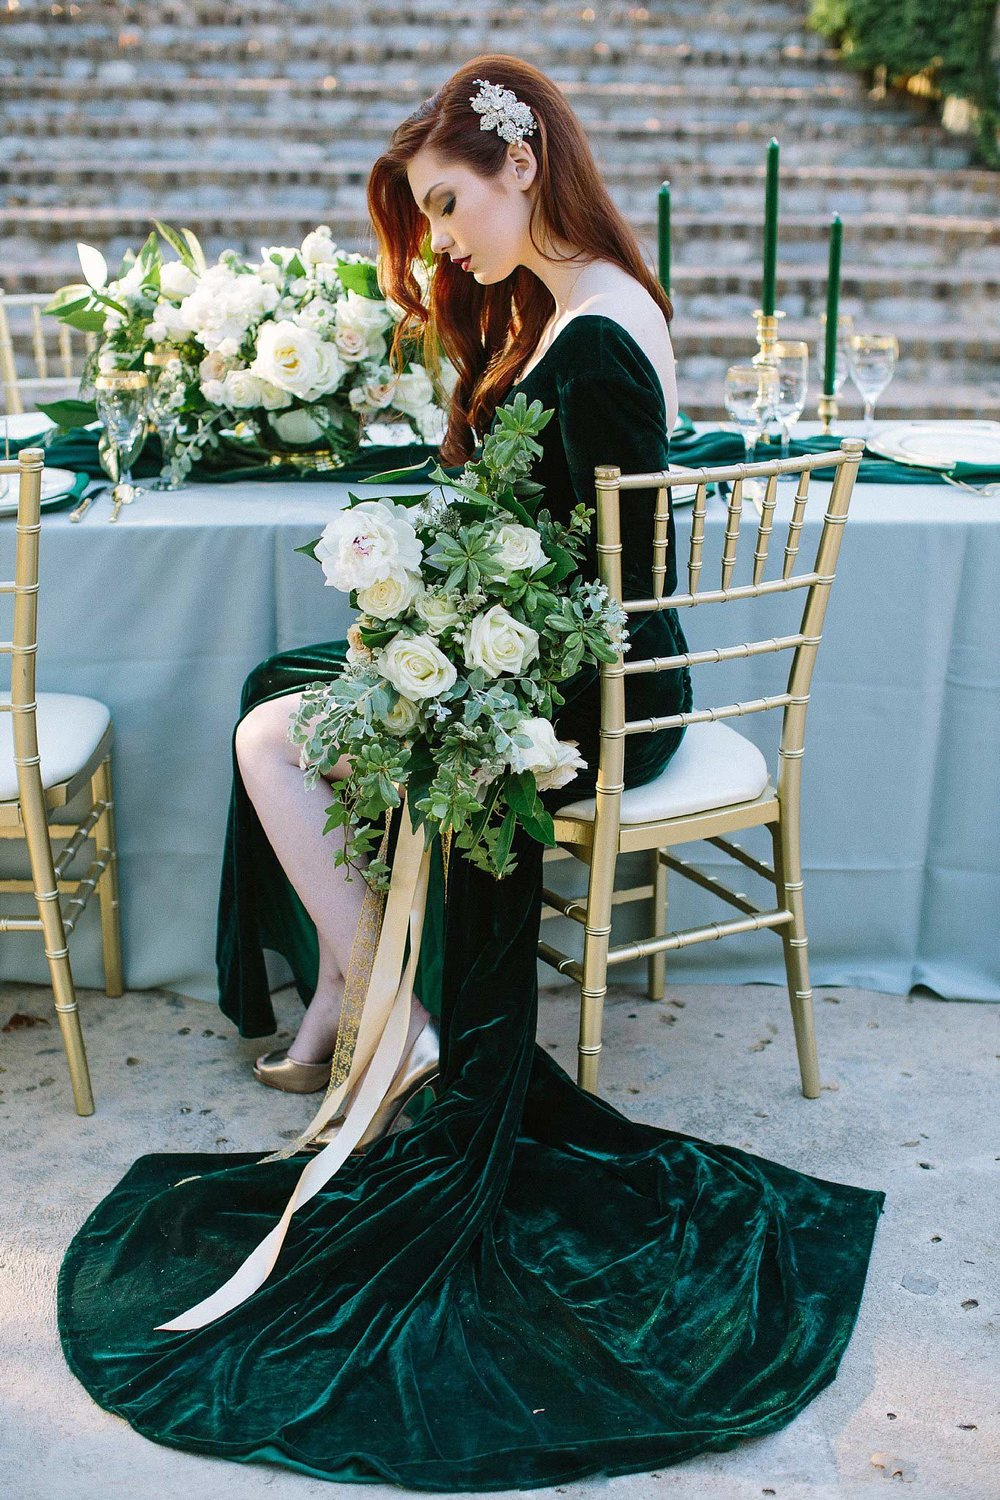 Greenery_Pantone-Color-of-the-Year-2017_Mansfield-TX_Aristide-Mansfield_Fort-Worth-and-Dallas-Wedding-Planner-and-Designer_Shannon-Rose-Events_0019.jpg